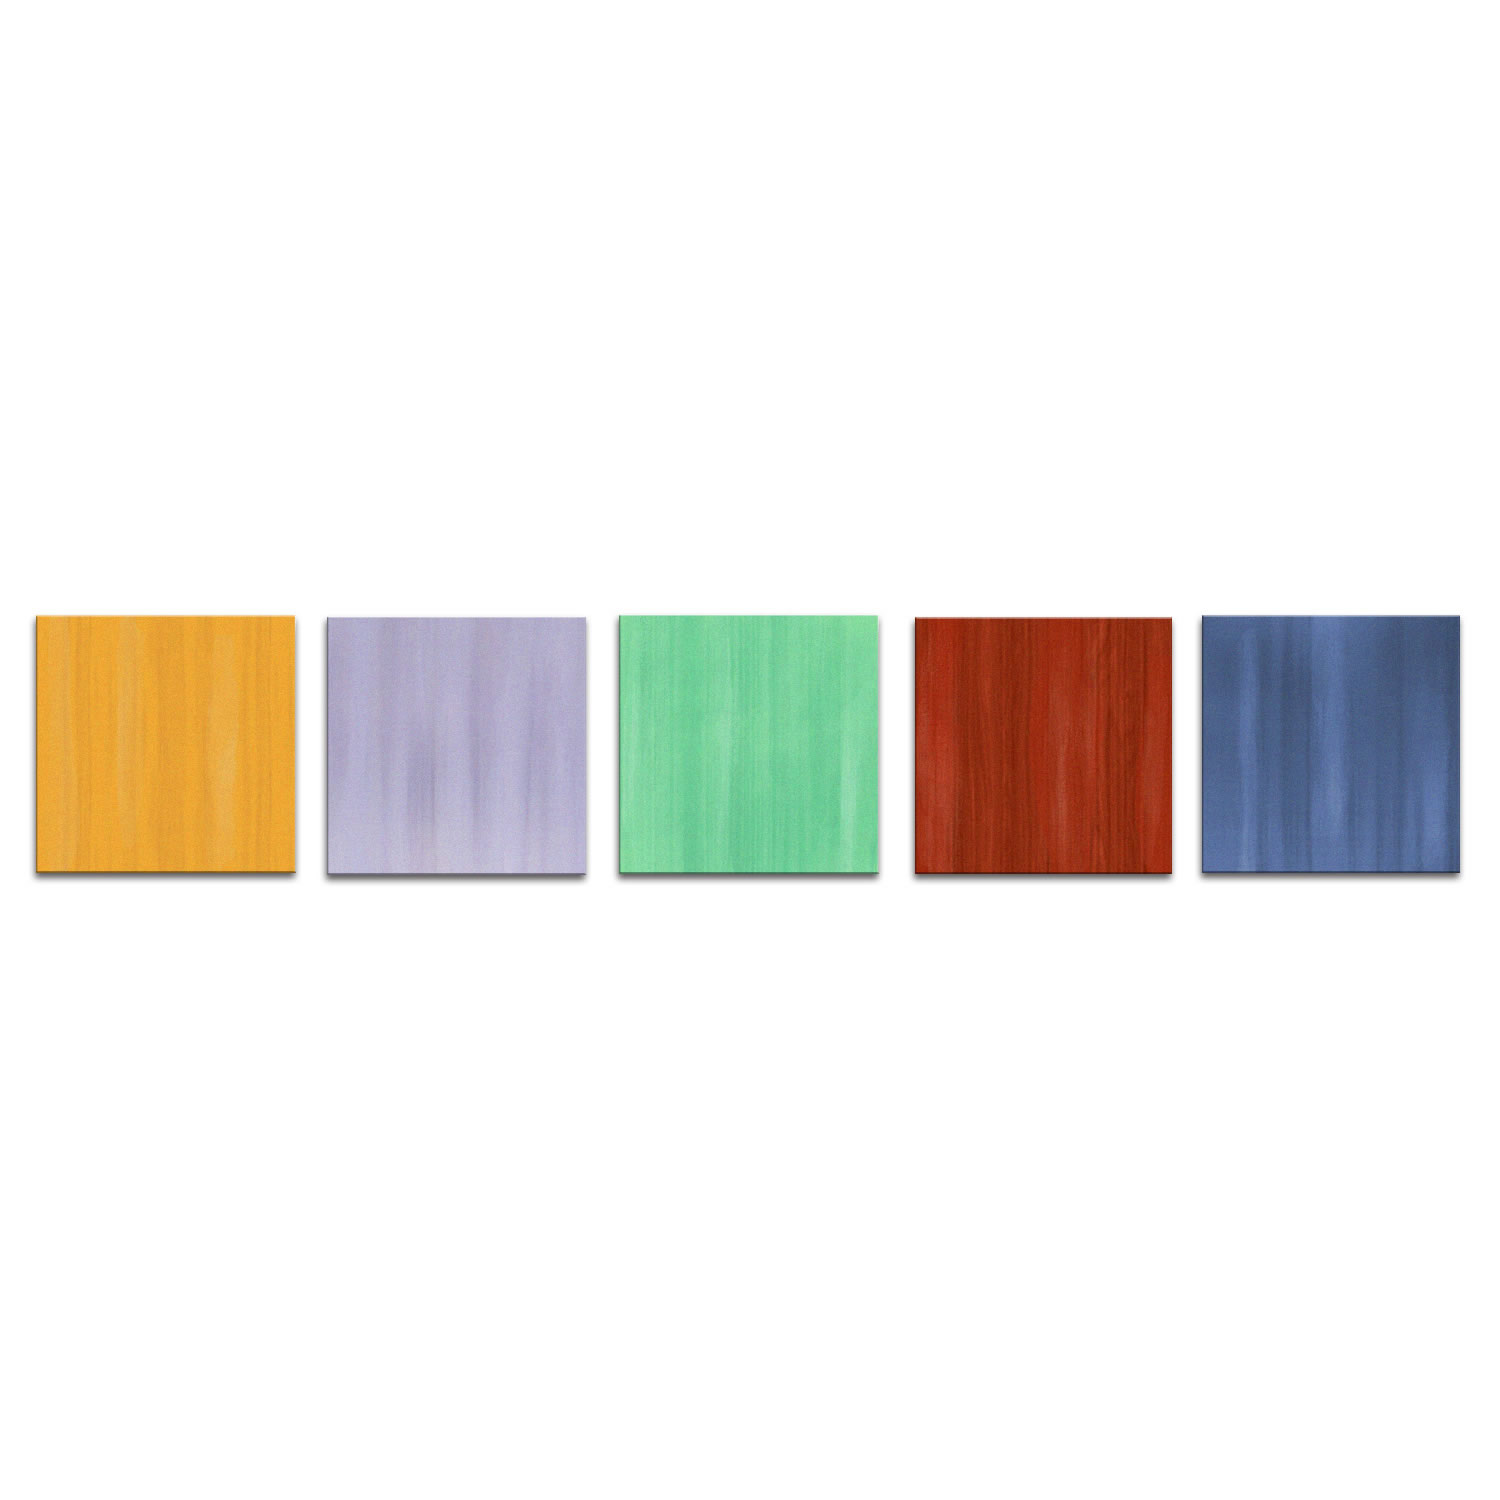 Spring - Colorful Contemporary Accents by Celeste Reiter